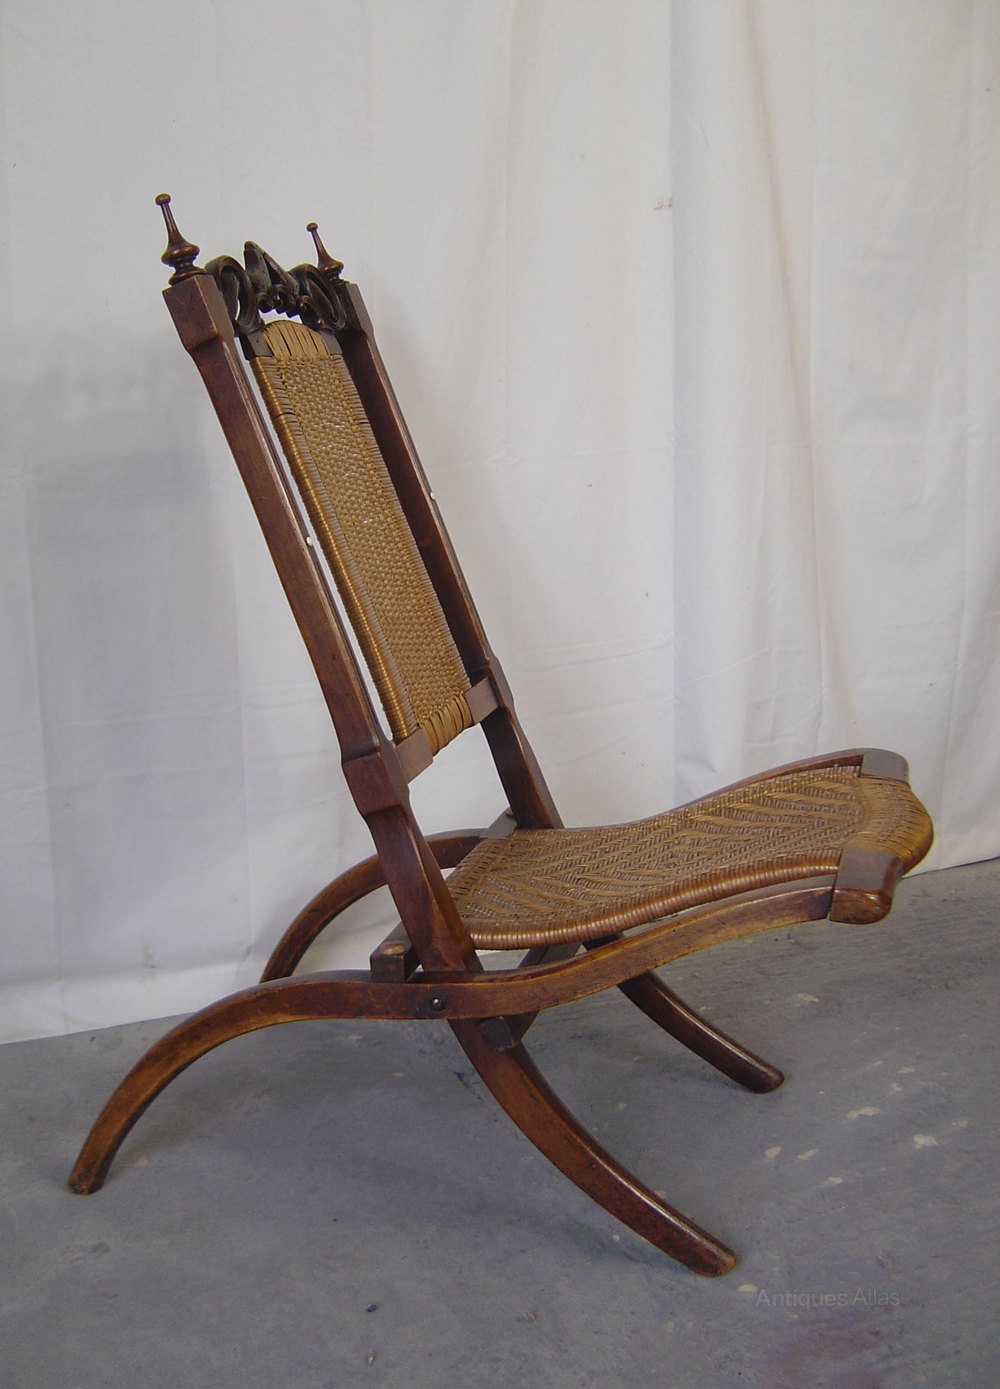 gothic chairs uk cool for girls a victorian walnut folding campaign chair - antiques atlas